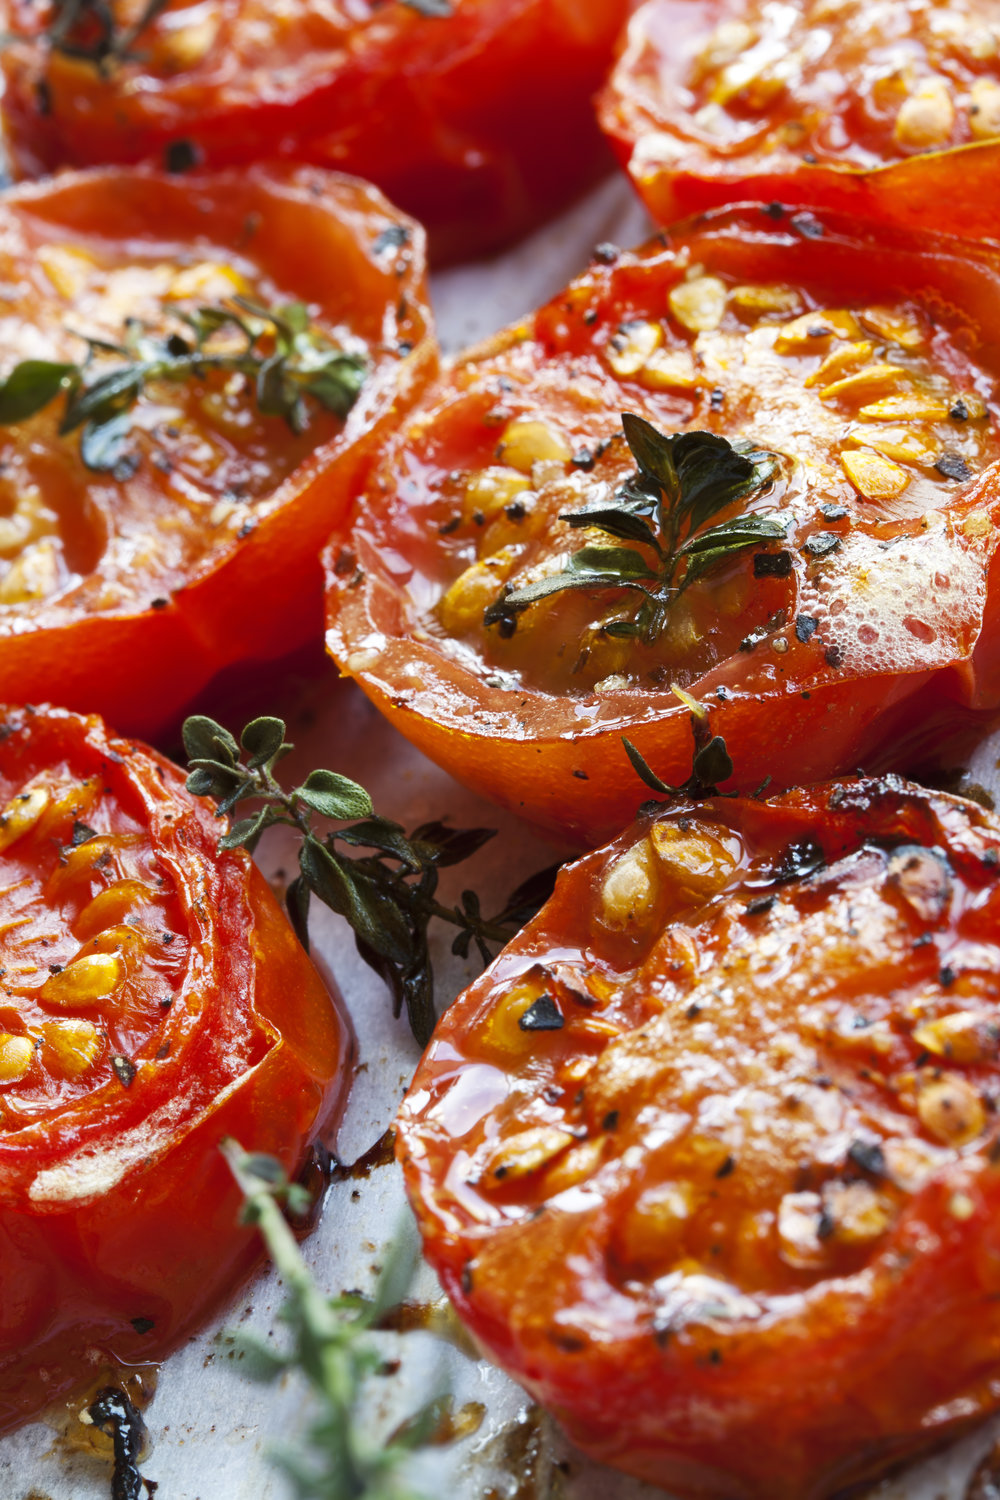 roasted-cherry-tomatoes-PV7N5LE.jpg